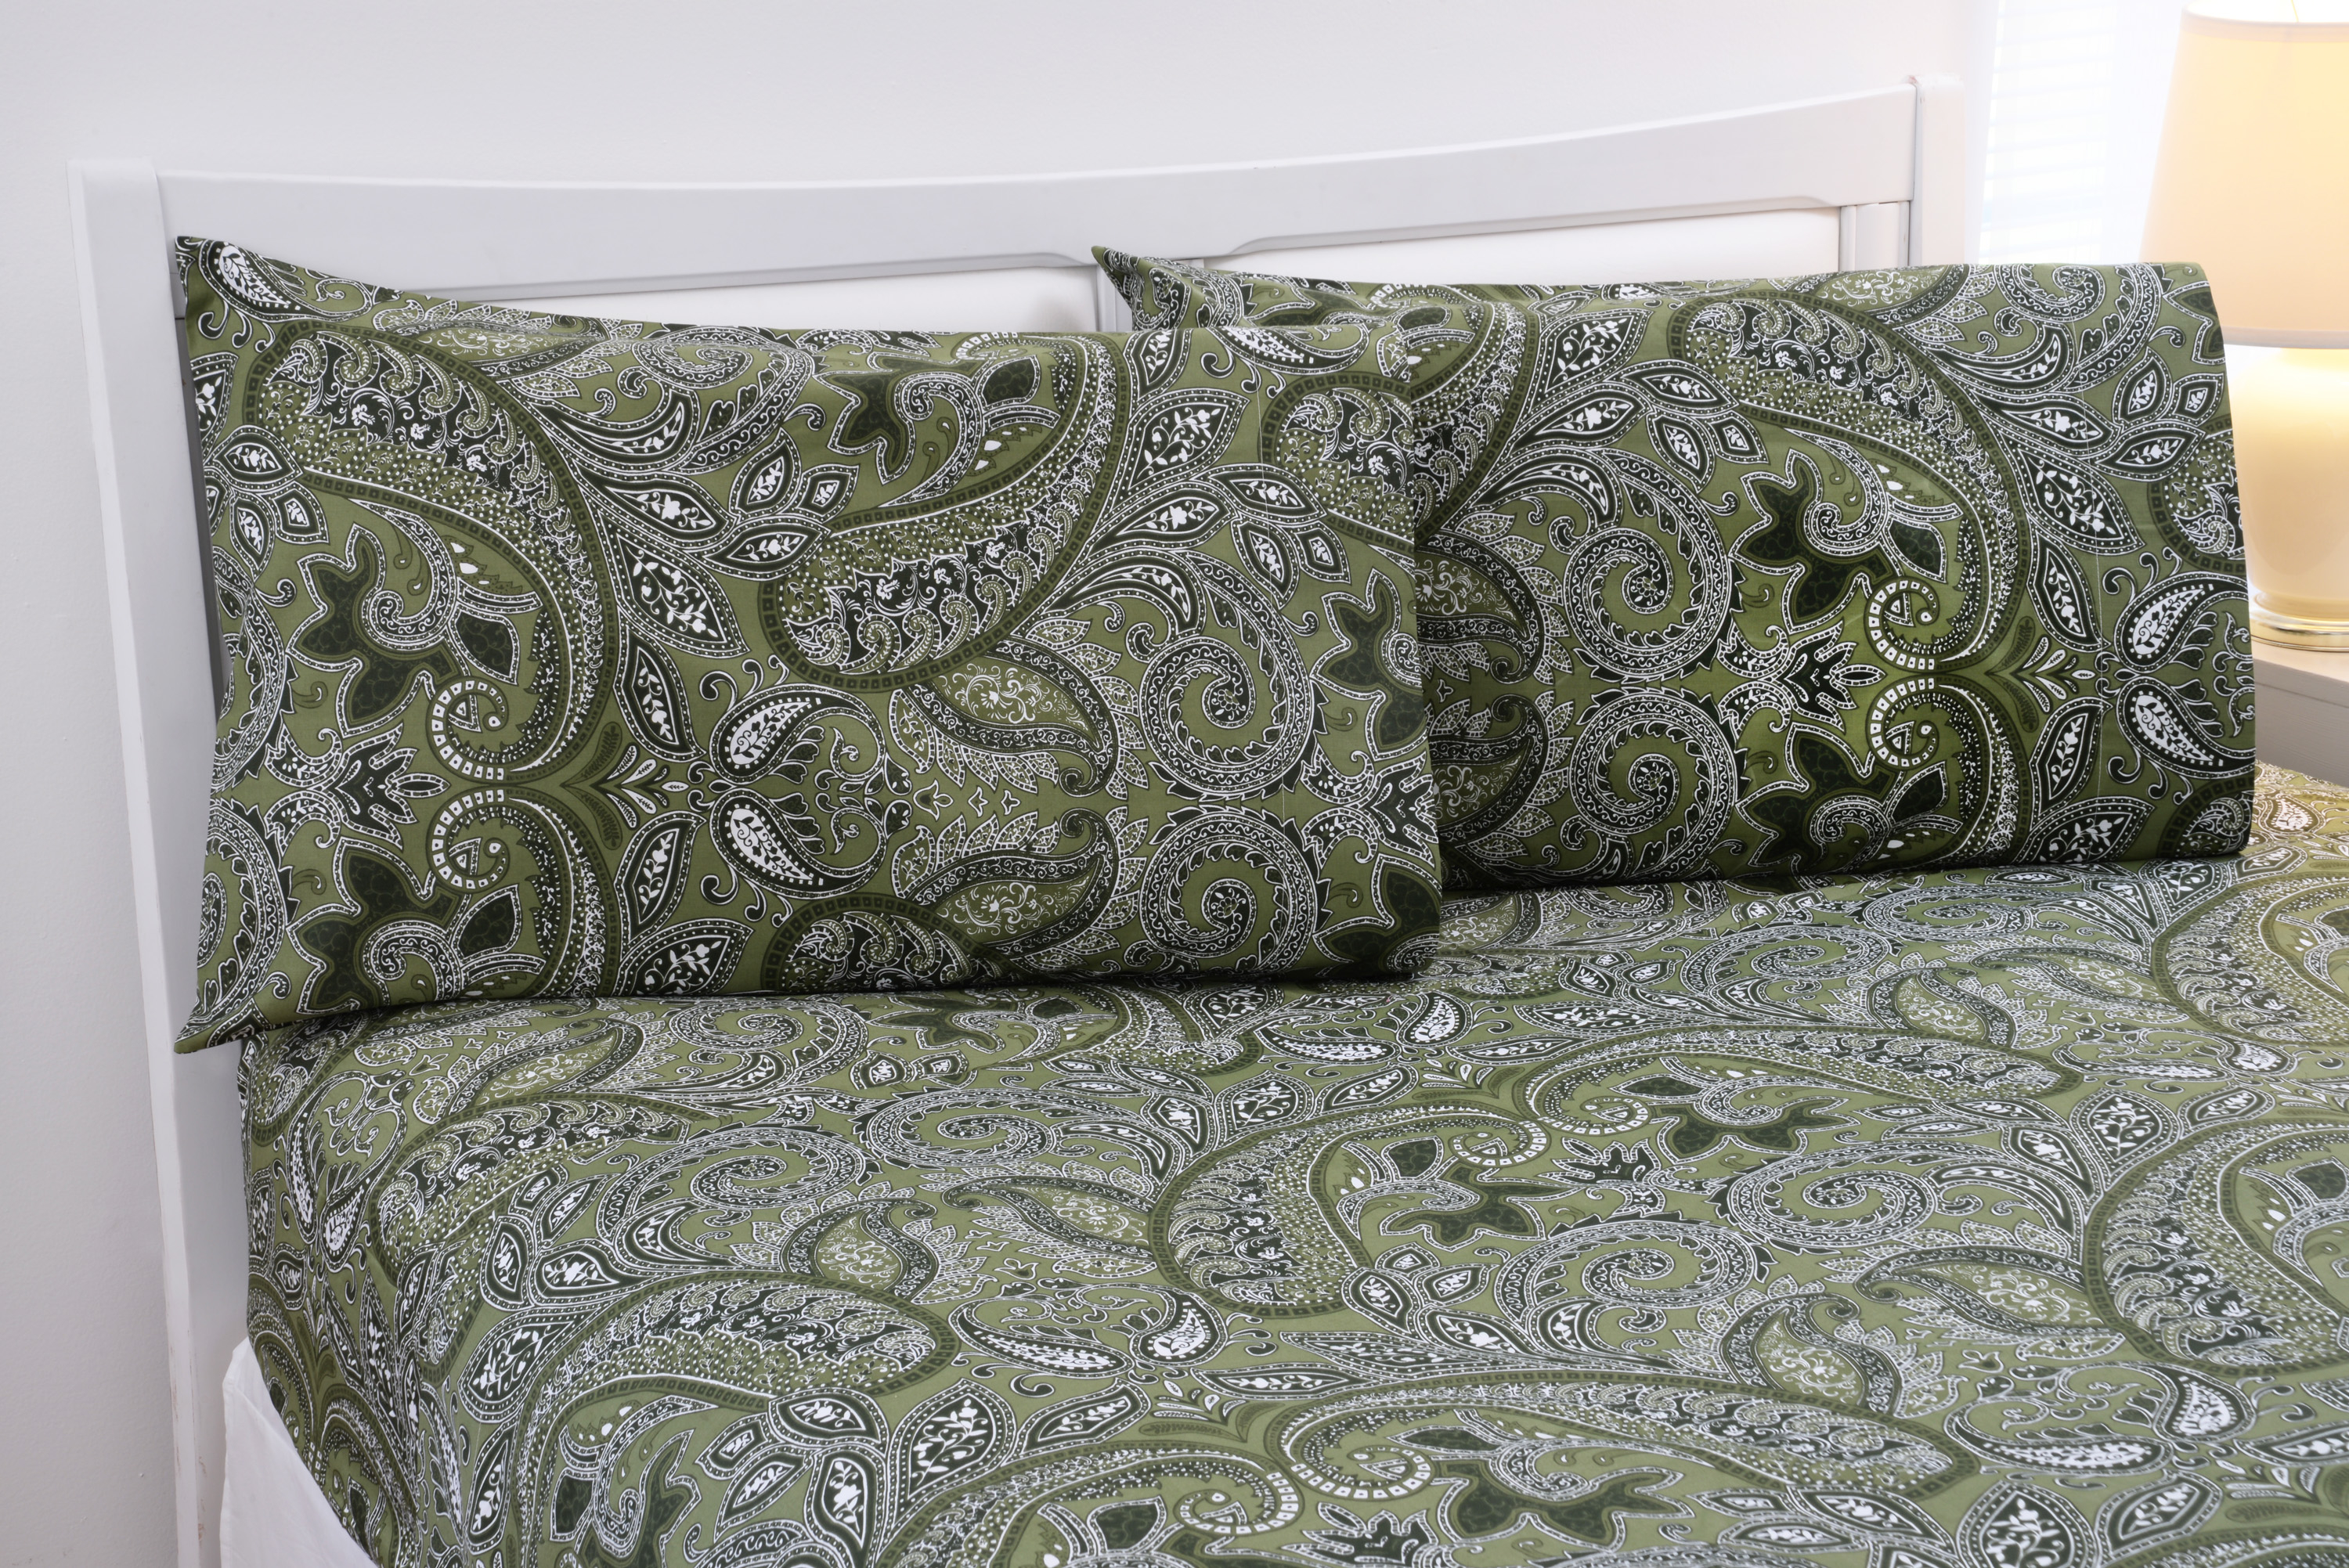 Paisley Collection 500 Thread Count Printed Egyptian Cotton Sheet Set - 5 Colors - Queen, Sage